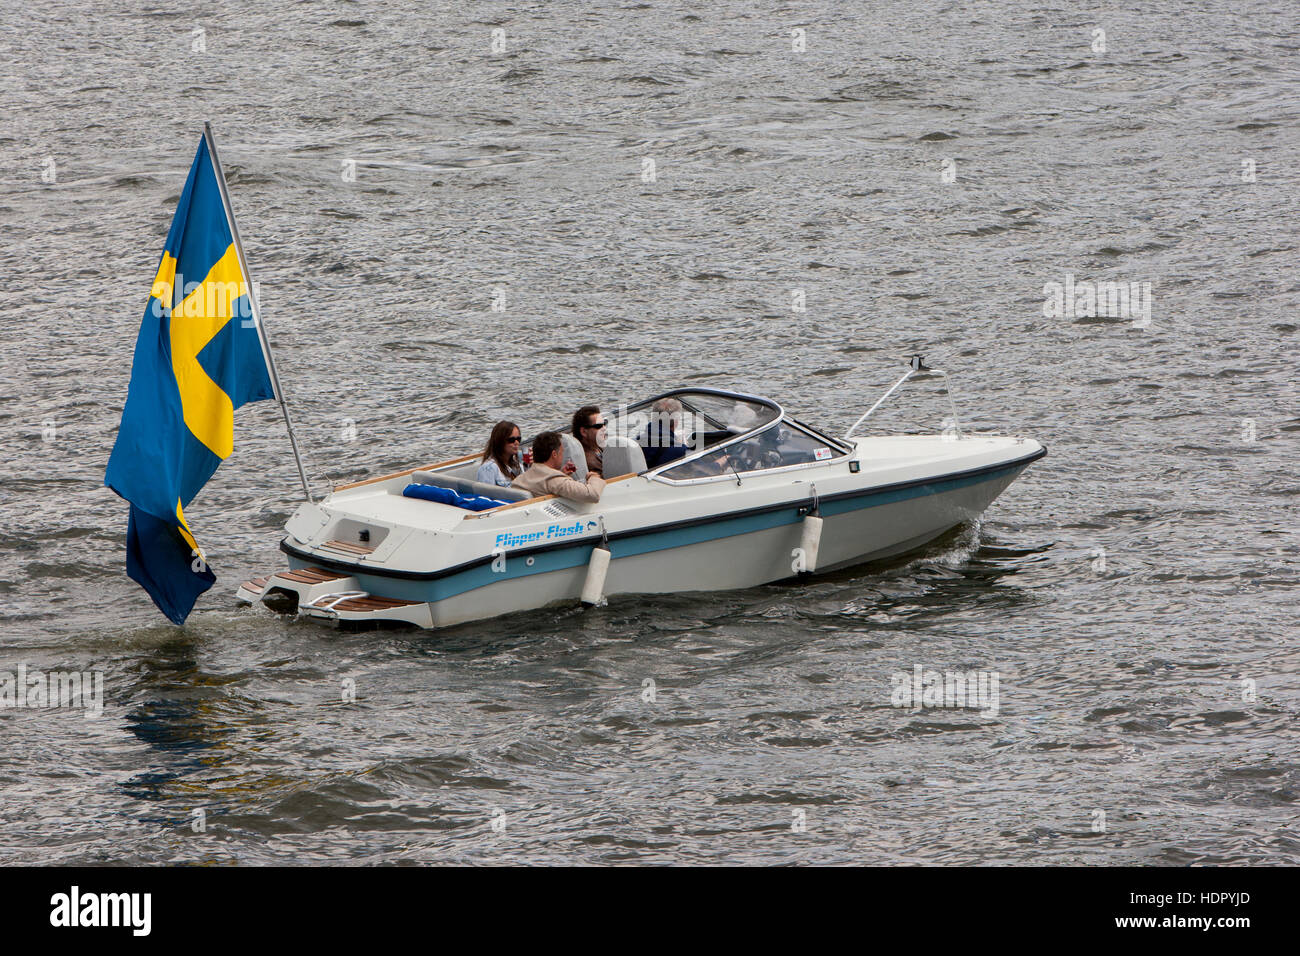 A boat with very large Swedish flag. - Stock Image